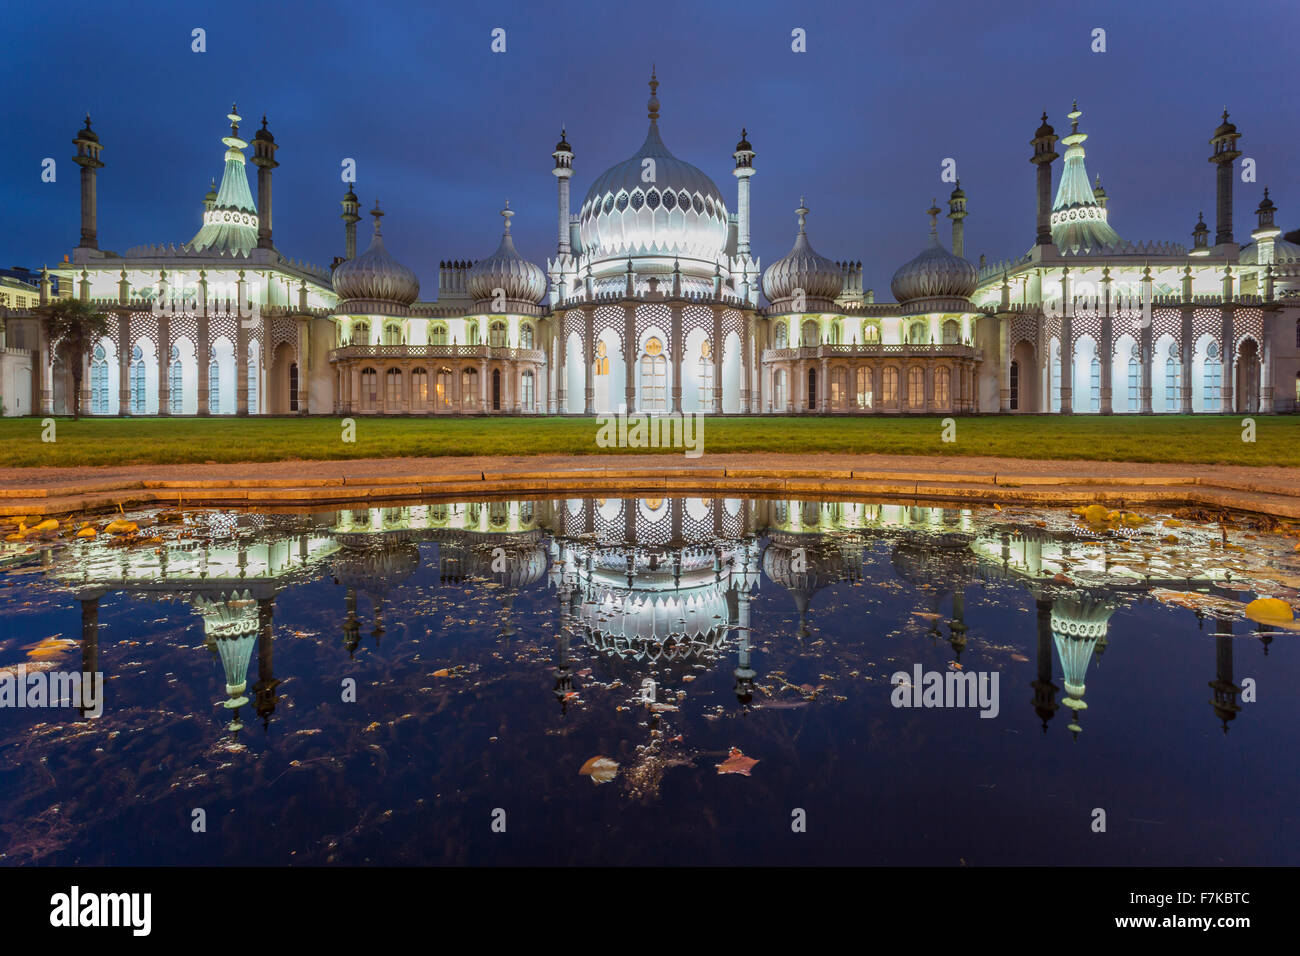 Evening at Royal Pavilion in Brighton, East Sussex, England. - Stock Image